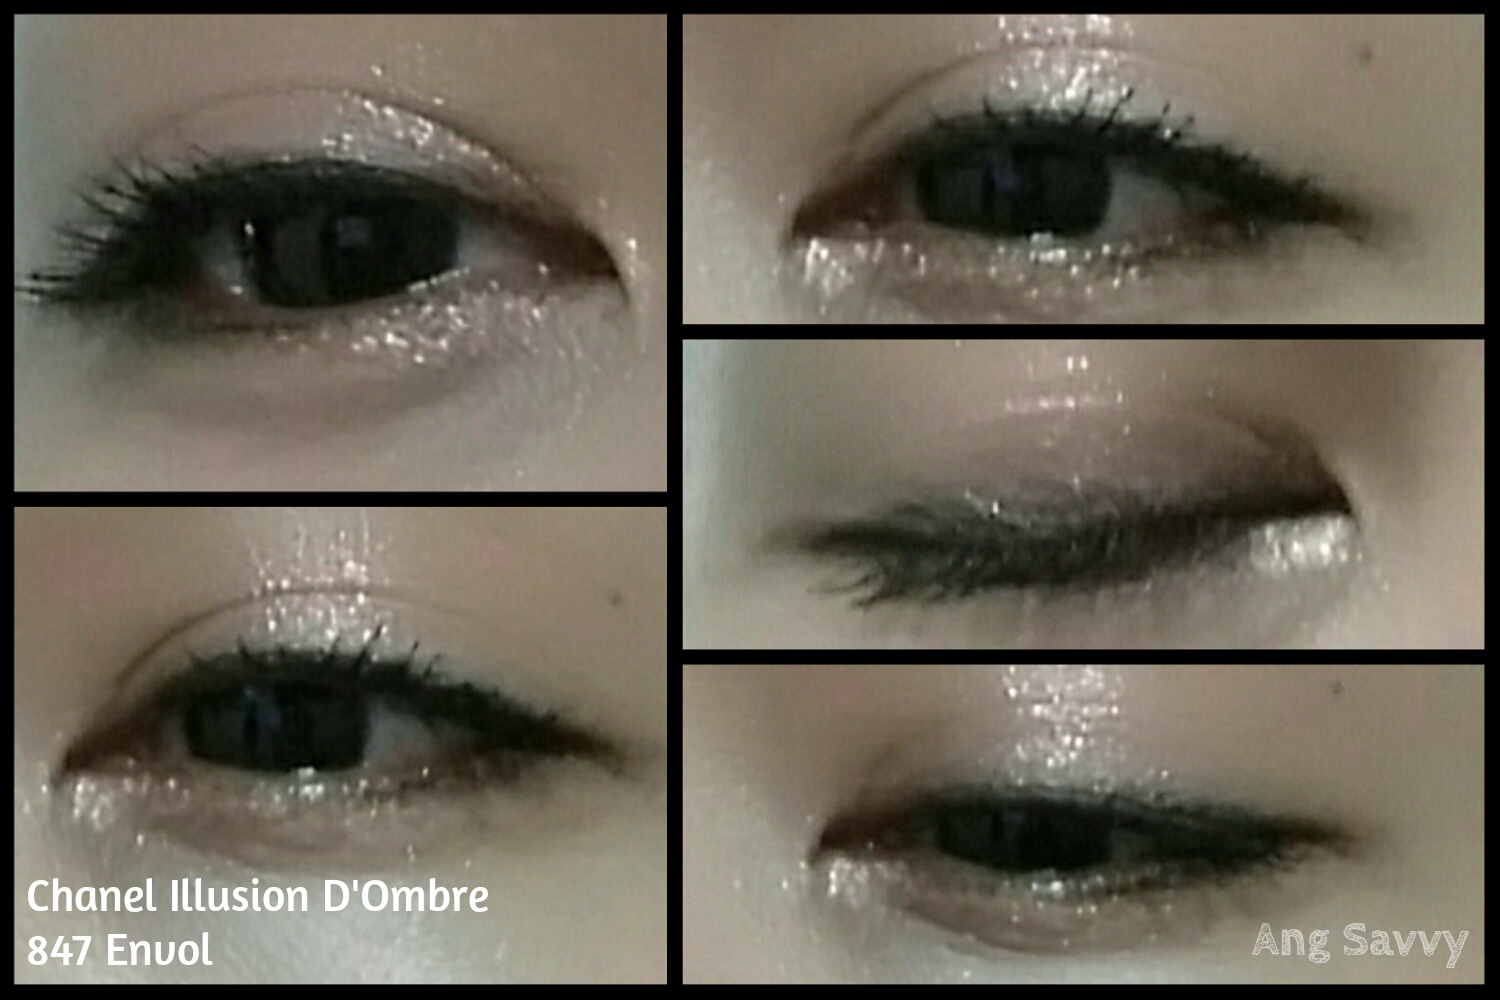 Chanel Illusion D'Ombre Long Wear Luminous Eyeshadow in 847 Envol